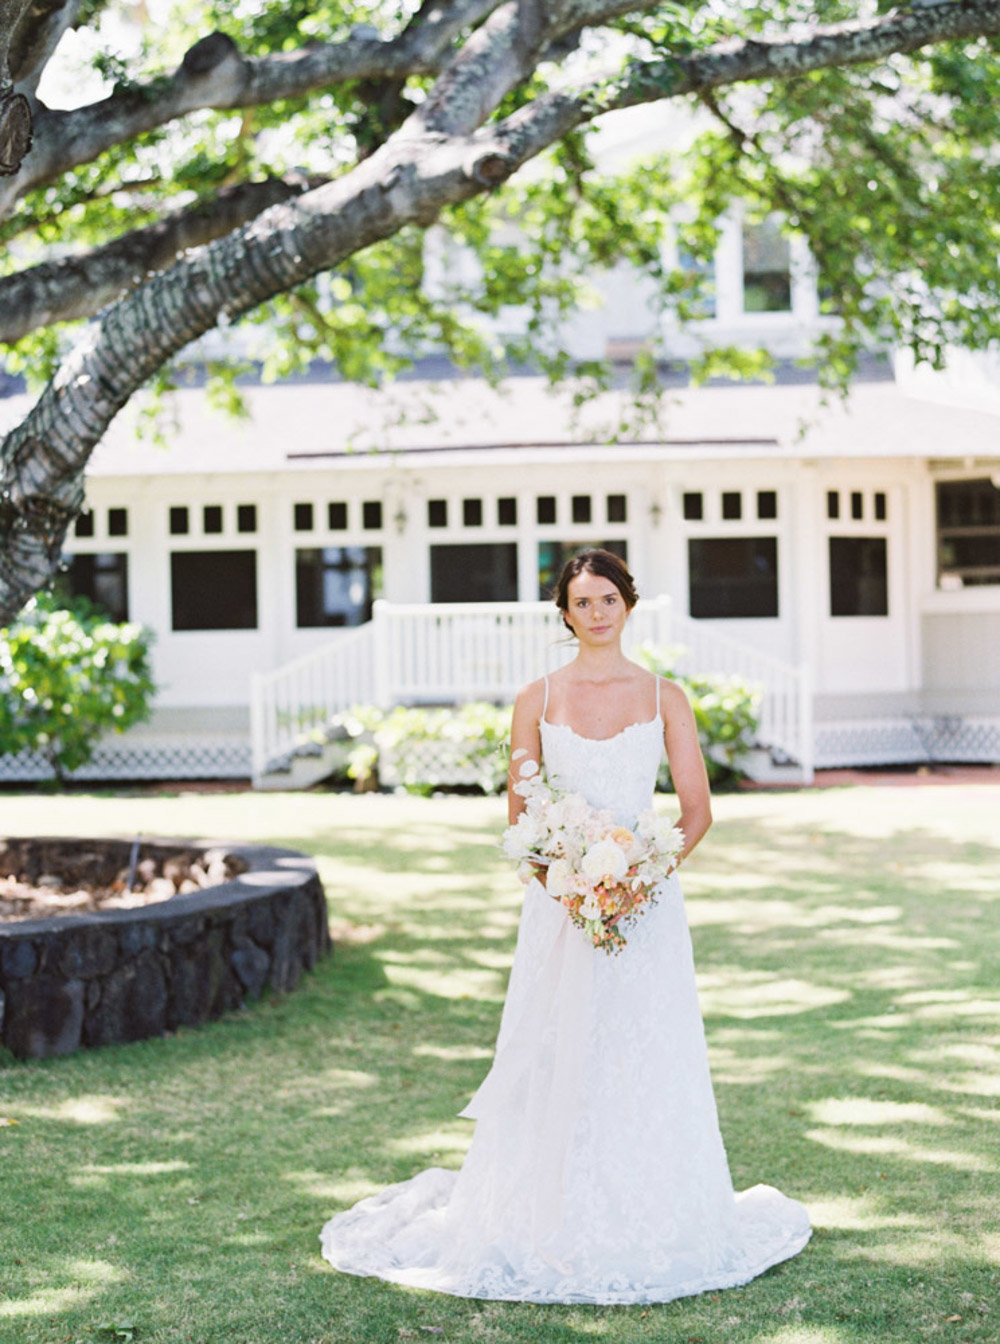 Hawaii Destination Wedding Photographer Sheri McMahon - Fine Art Film Tropical Hawaii Wedding Inspiration-00038